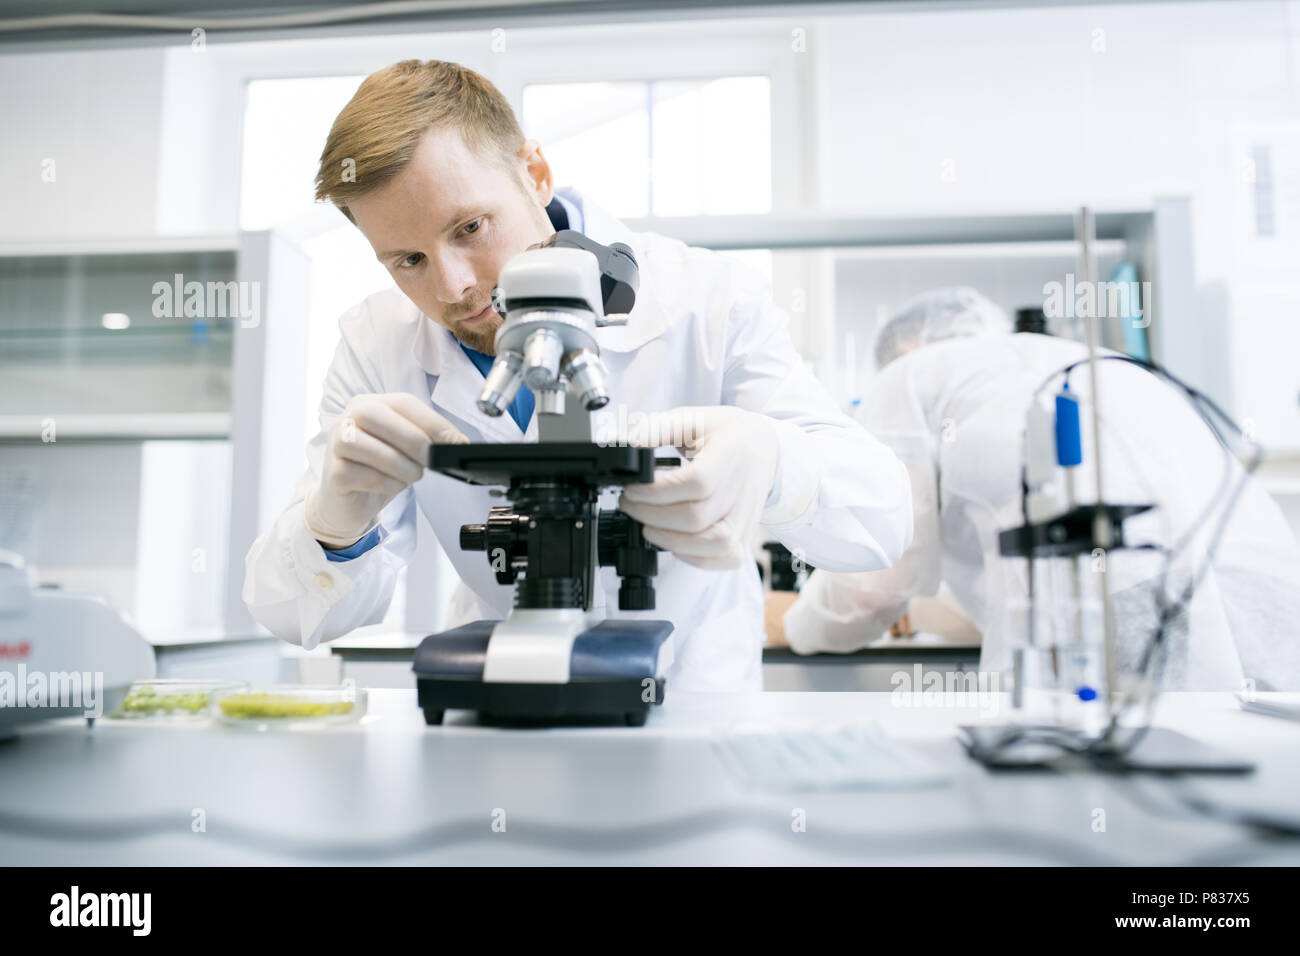 Scientist Using Microscope in Lab - Stock Image